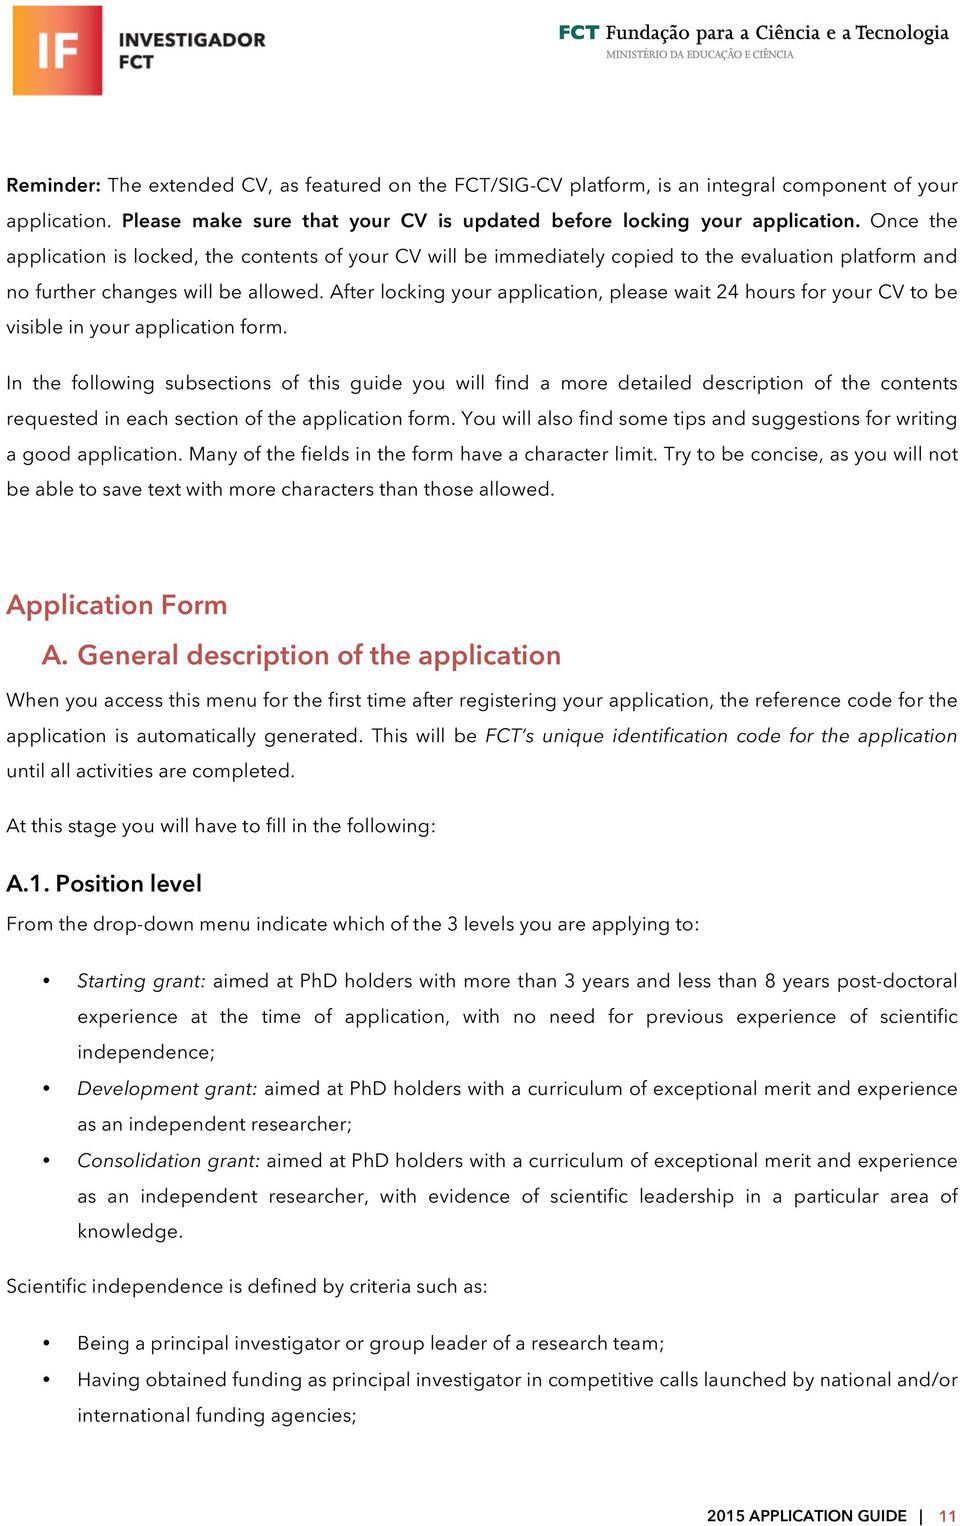 After locking your application, please wait 24 hours for your CV to be visible in your application form.